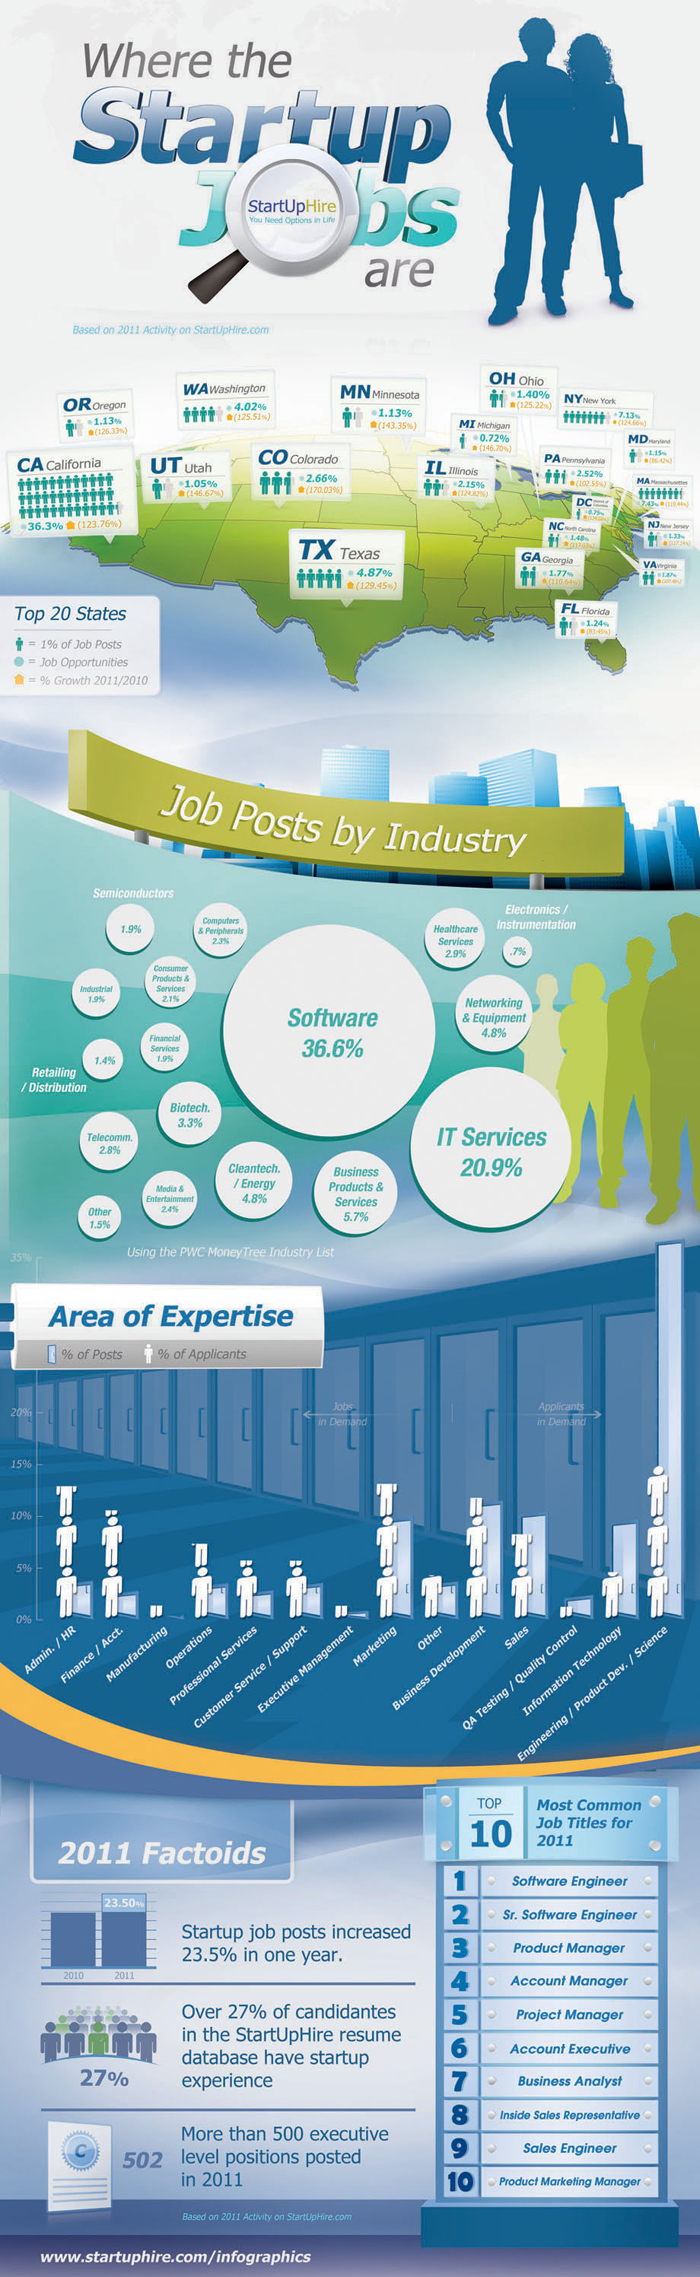 Where Are the Startup Jobs in the U.S.? [Infographic] image startuphire inforgraphic 2011